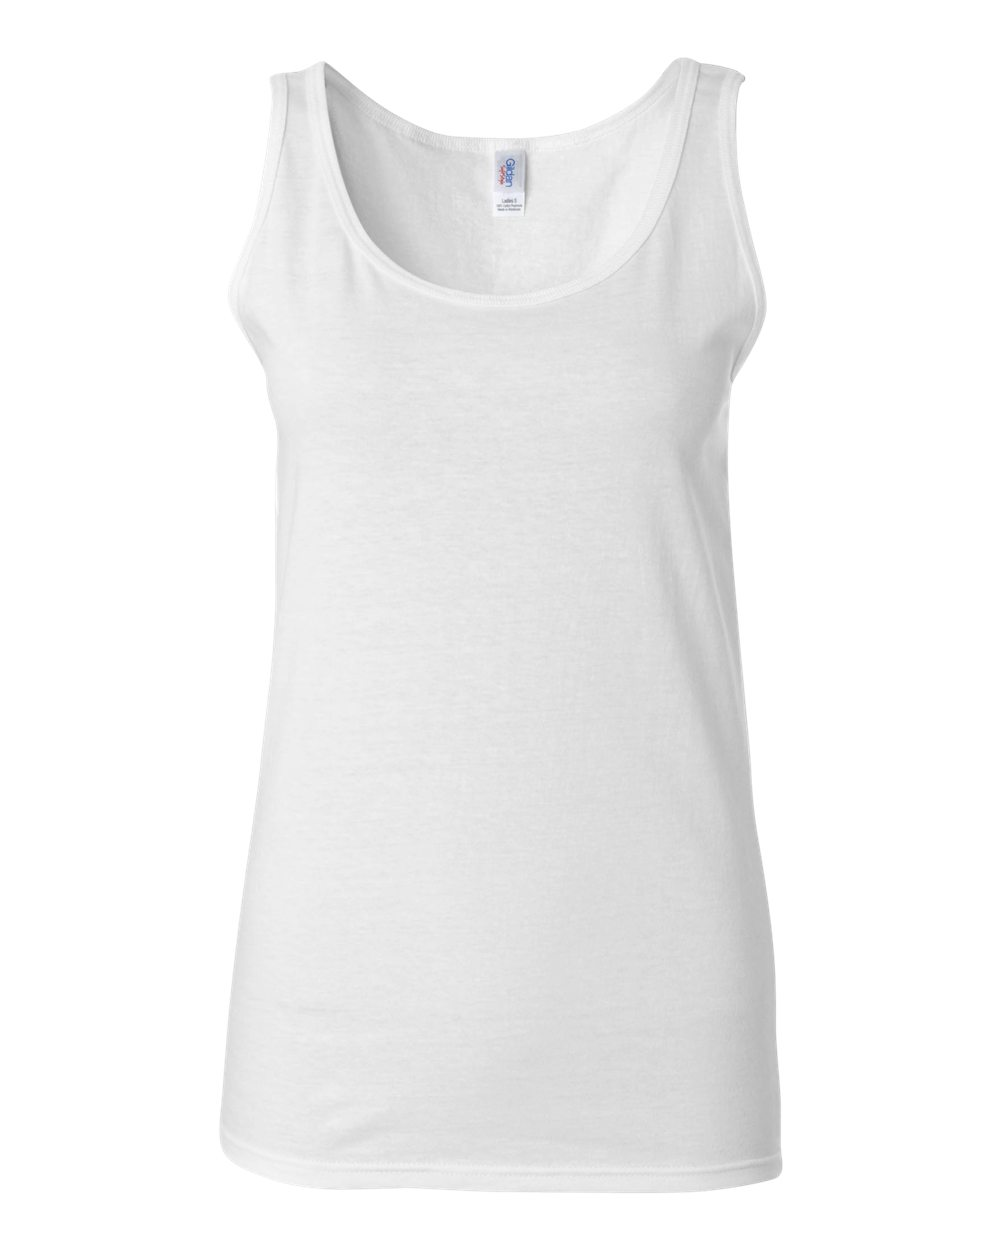 Picture of Gildan Softsyle Ladies Fit Tank Top